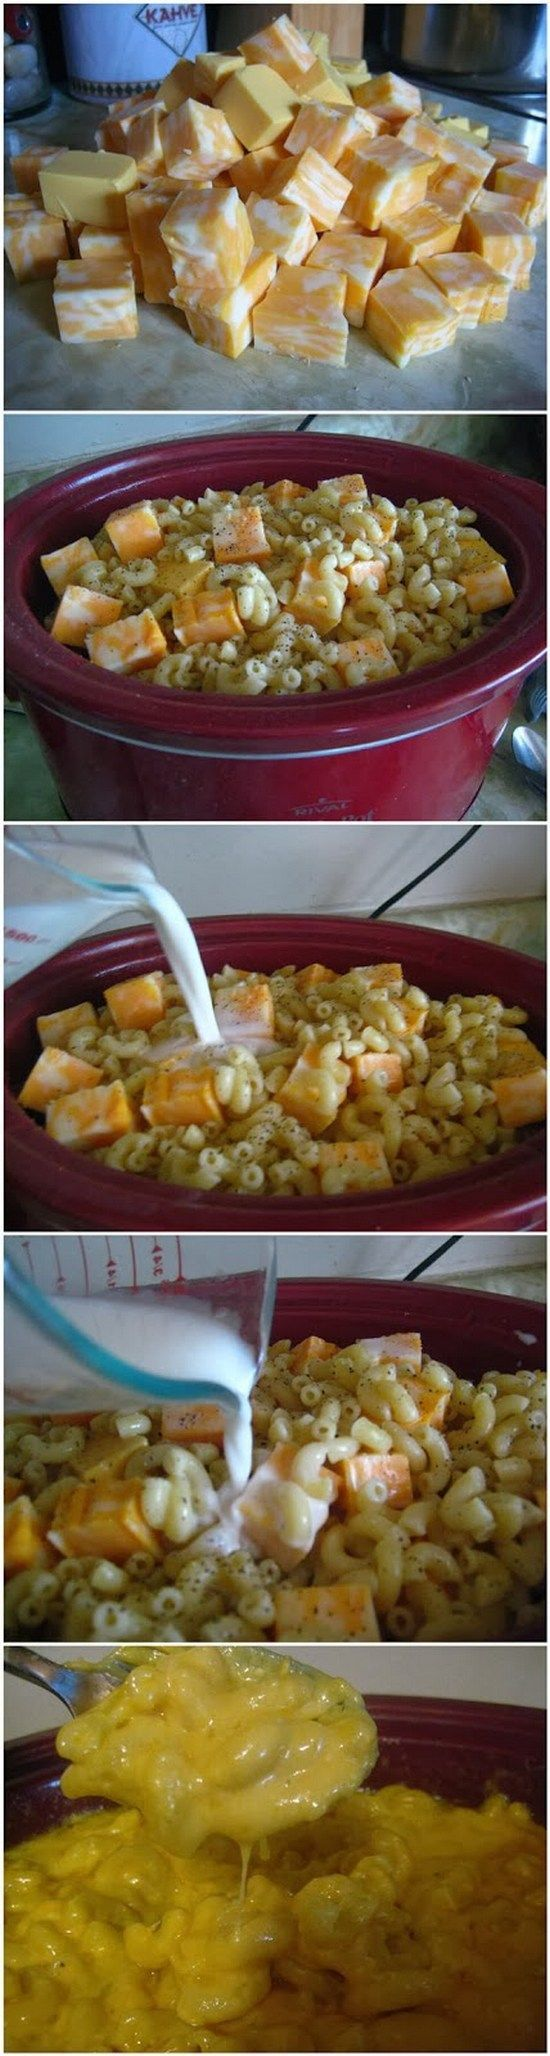 Crock Pot Mac and Cheese – A great meal to make in your crock pot on a busy day.